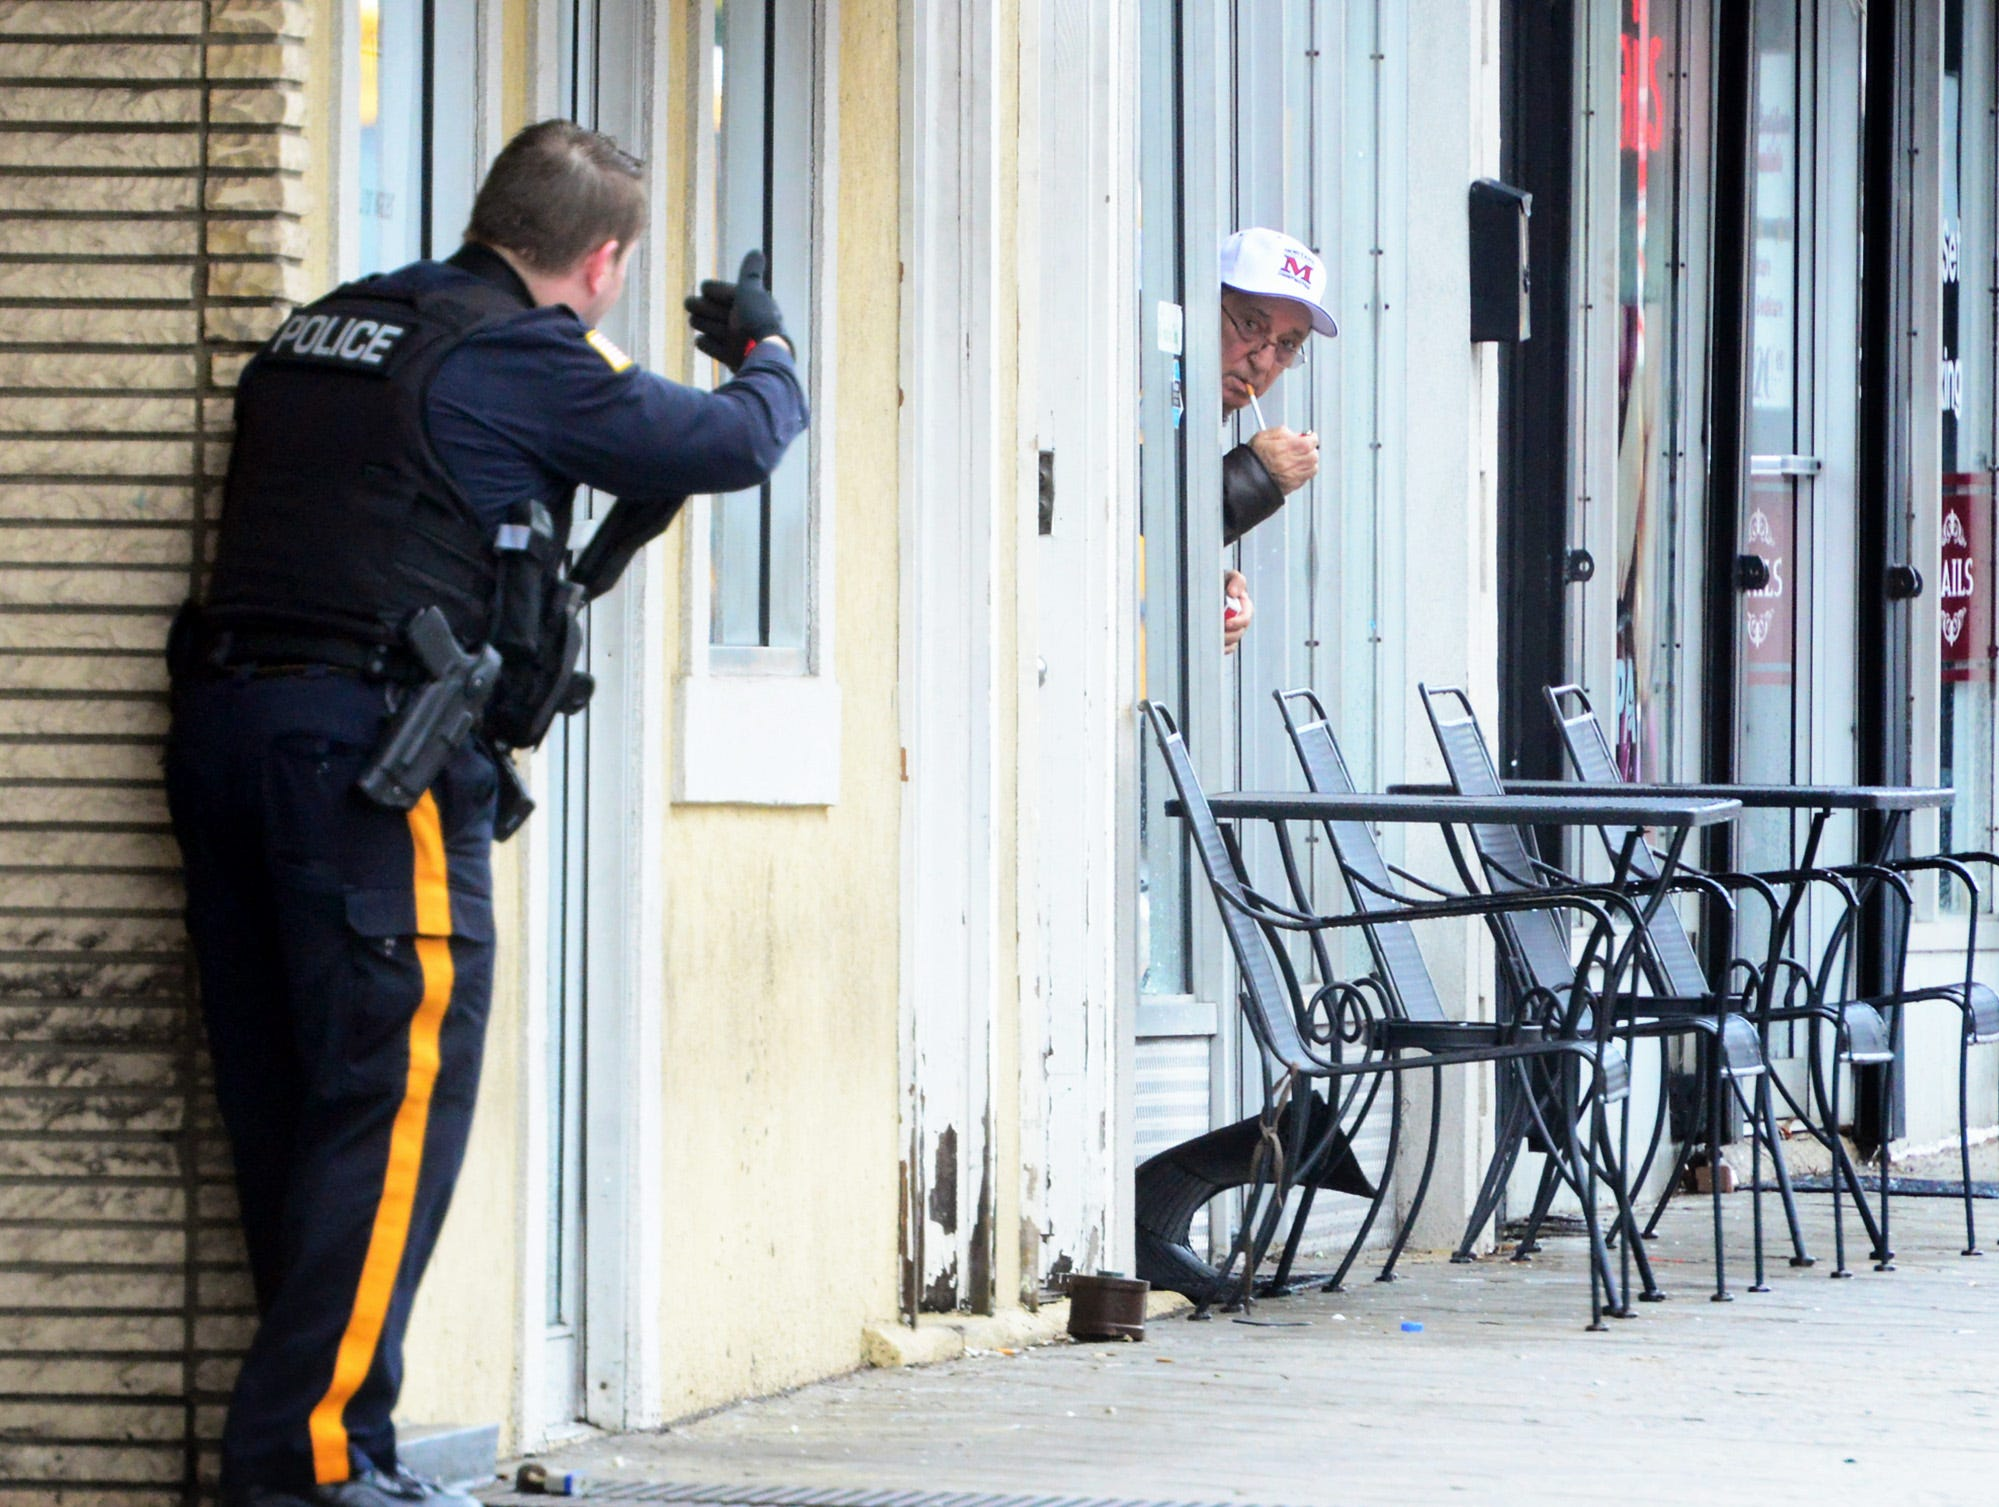 An East Rutherford Police Officer motions to a man trying to sneak a smoke break from a restaurant to get back into the building during the stand off in East Rutherford on Monday April 16, 2018.